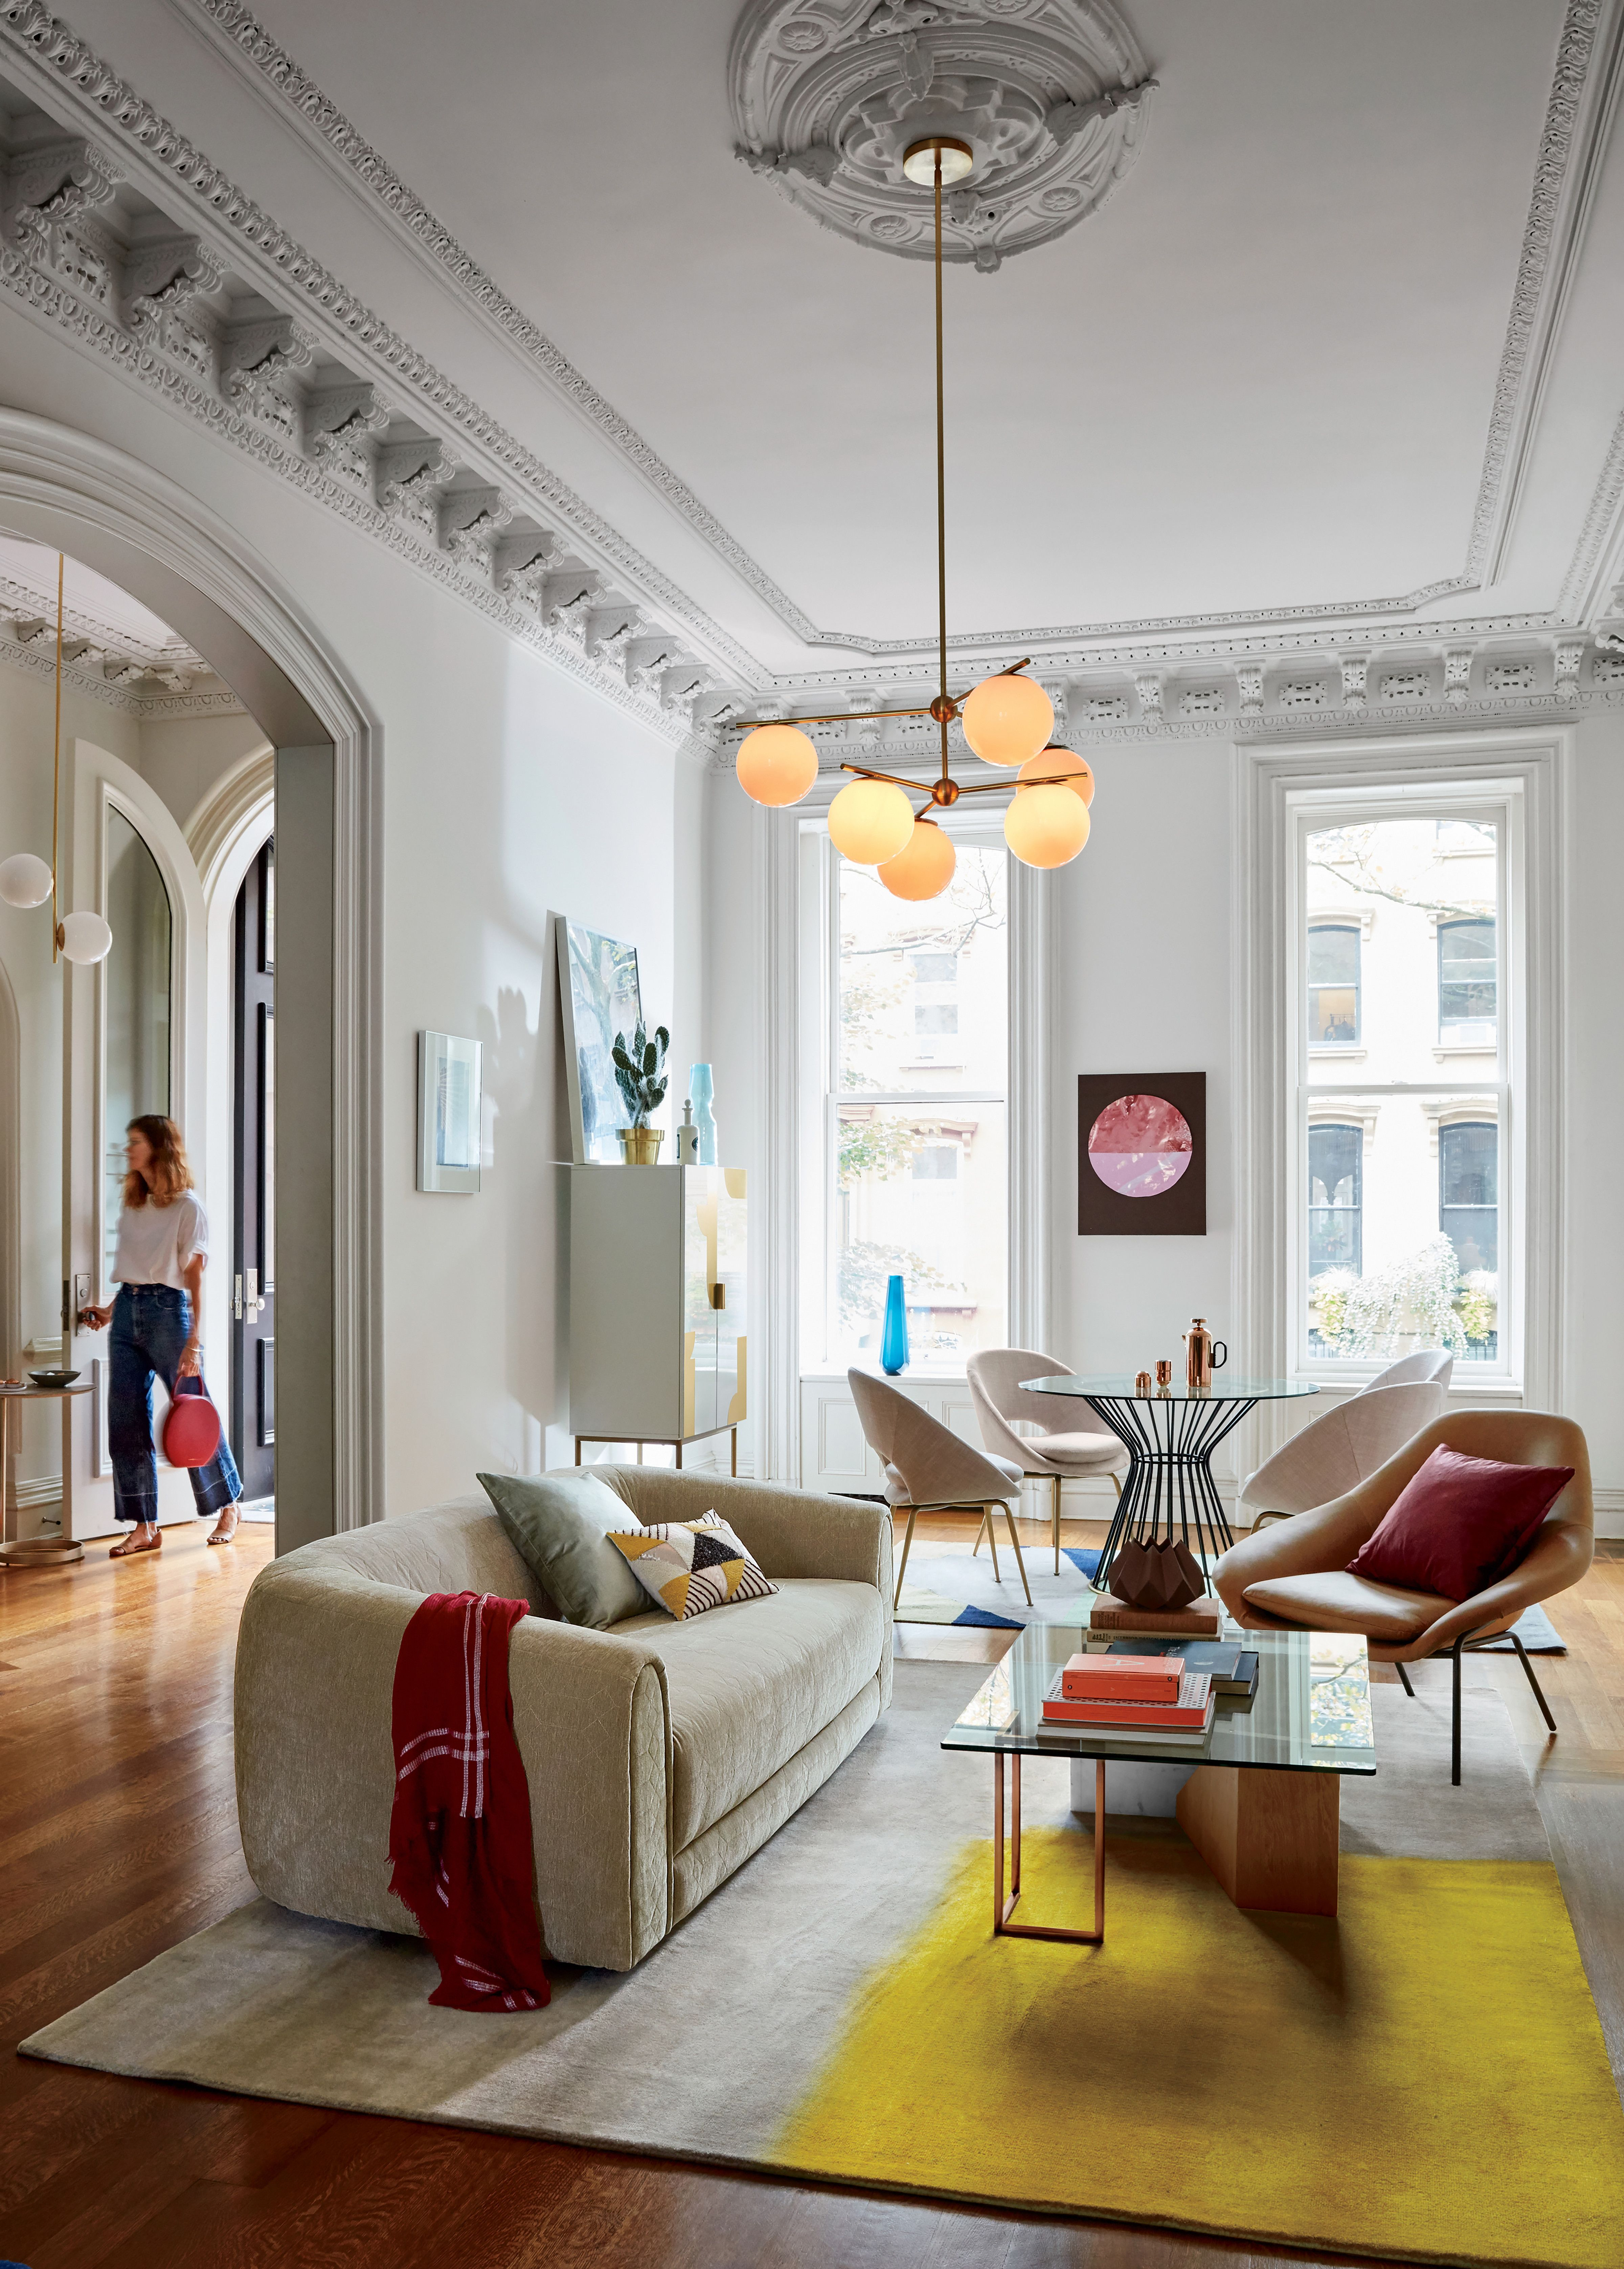 west elm living rooms. 6 Trends to Adopt Now Ahead of 2017  According West Elm Modern Living RoomsDesigner